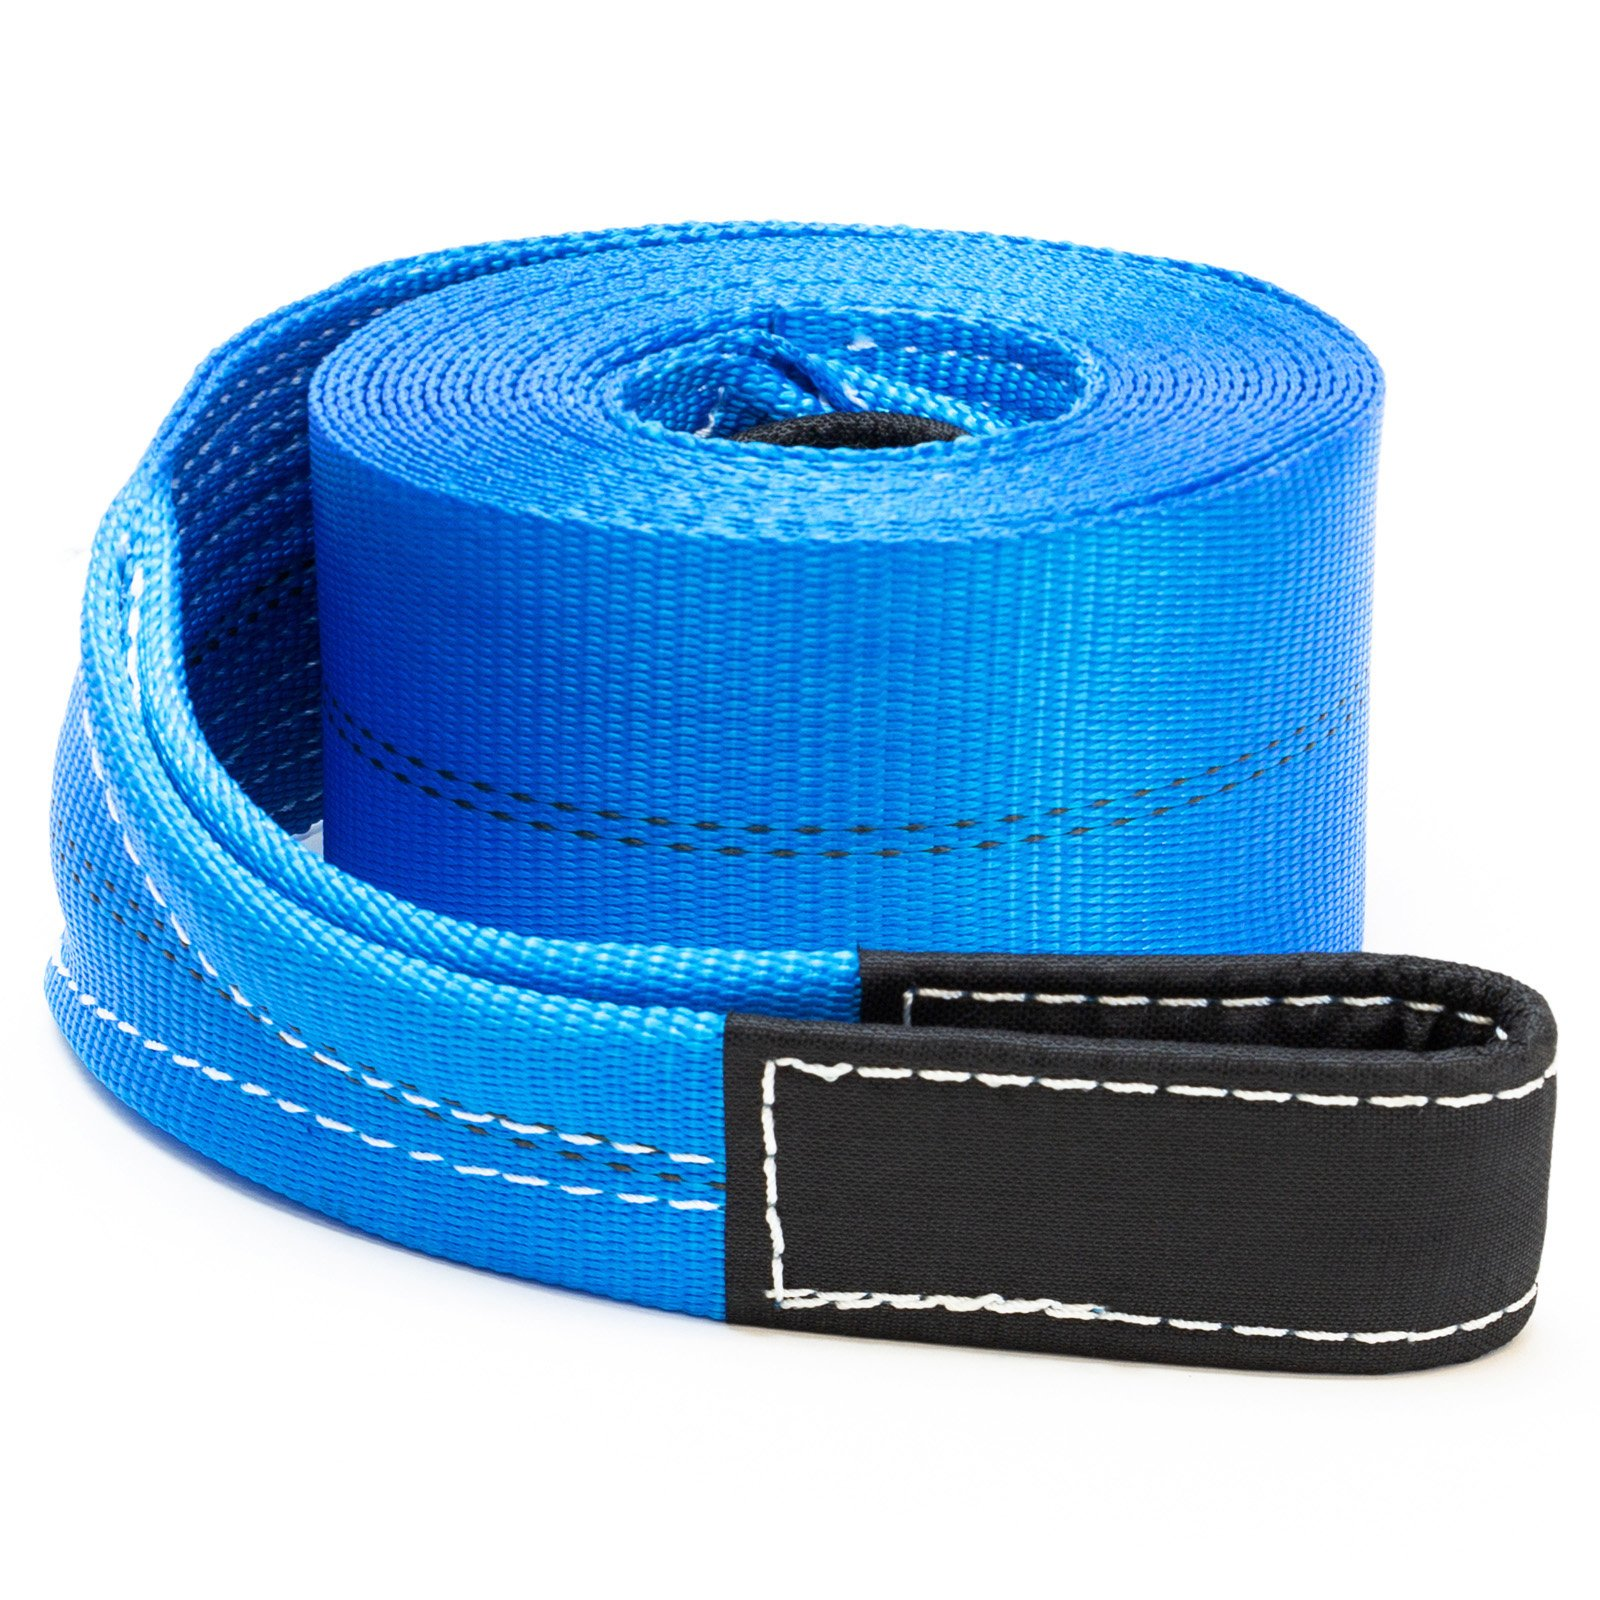 Driver Recovery 4'' x 30' Heavy Duty Tow/Recovery Winch/Snatch Strap with Reinforced Loops - 20,000 Pound Pulling Power for Emergency Towing by Driver Recovery Products